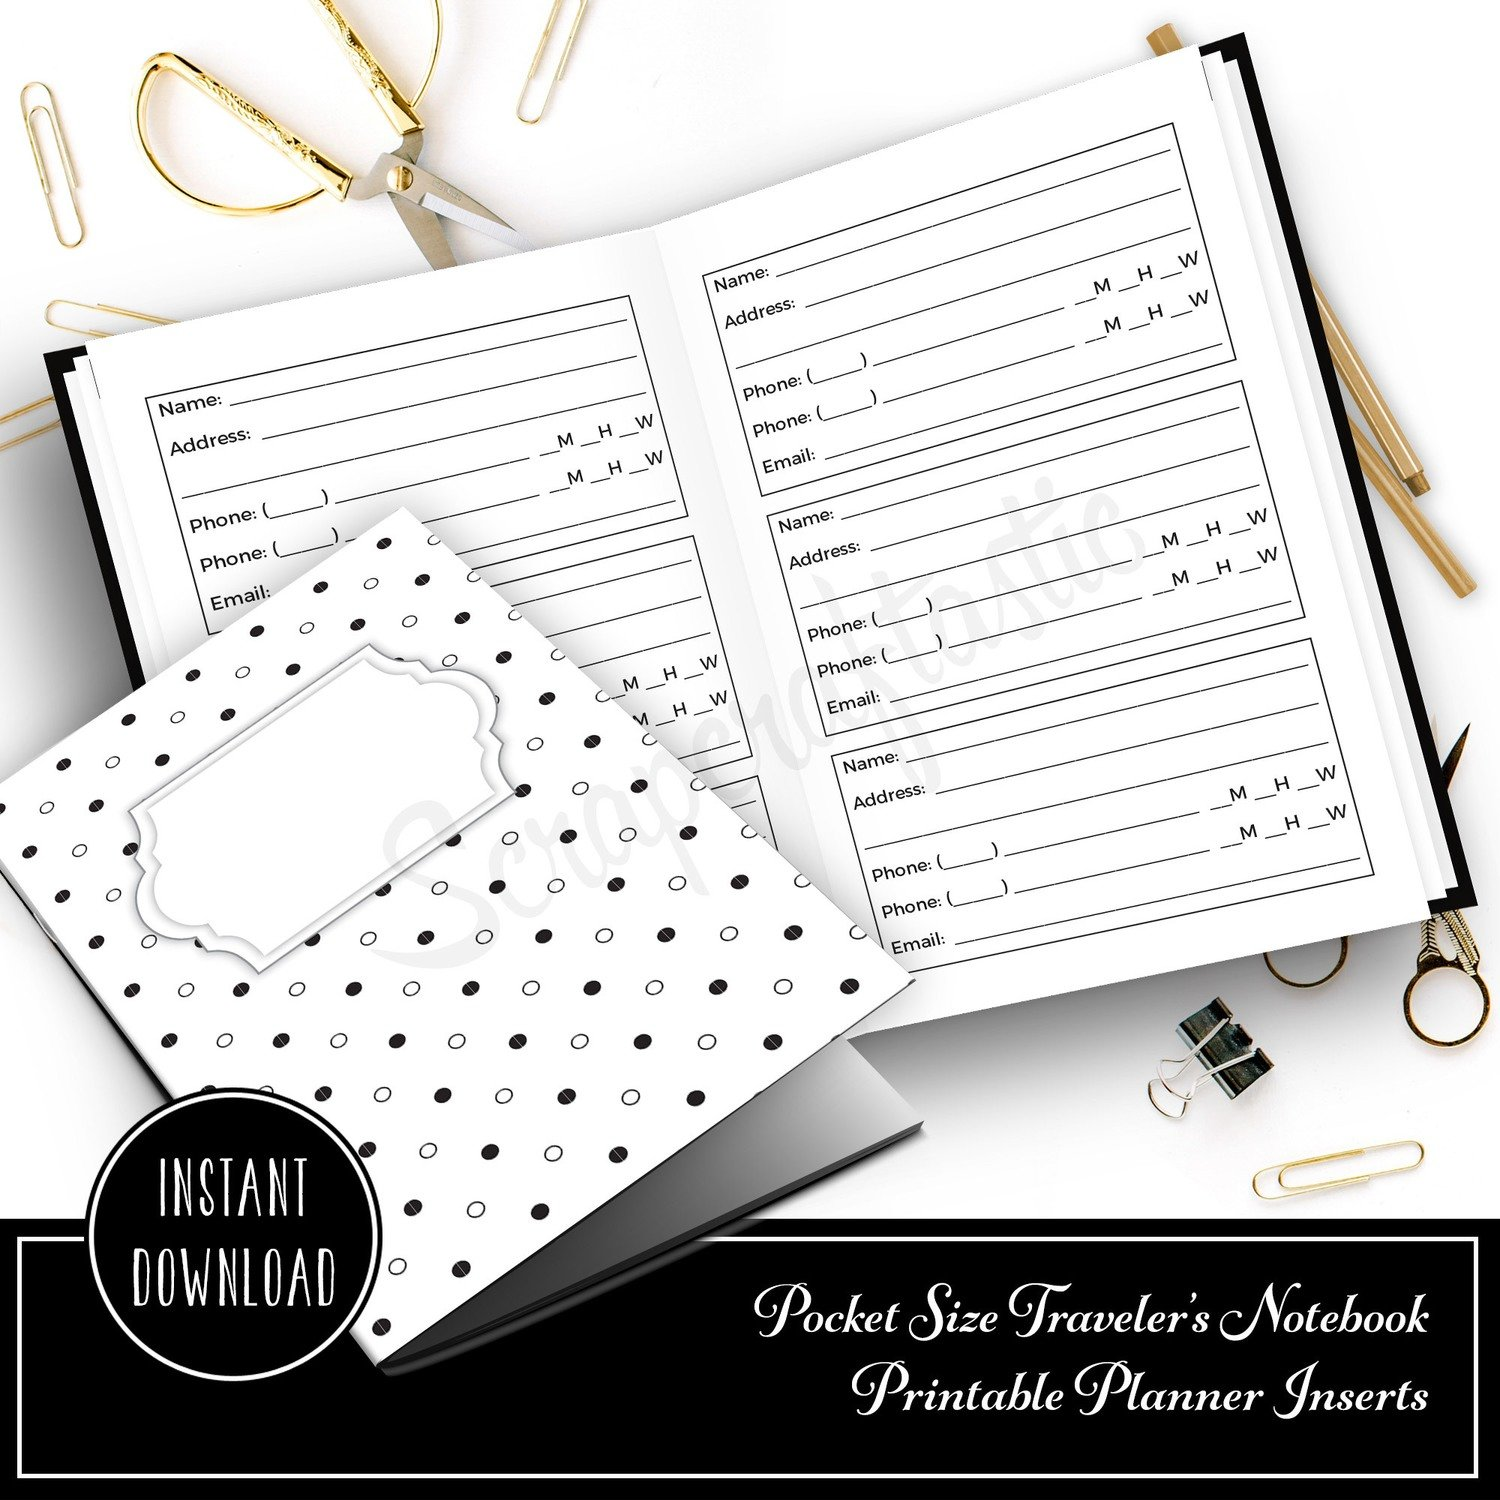 Address and Phone Log Pocket Size Traveler's Notebook Printable Planner Inserts